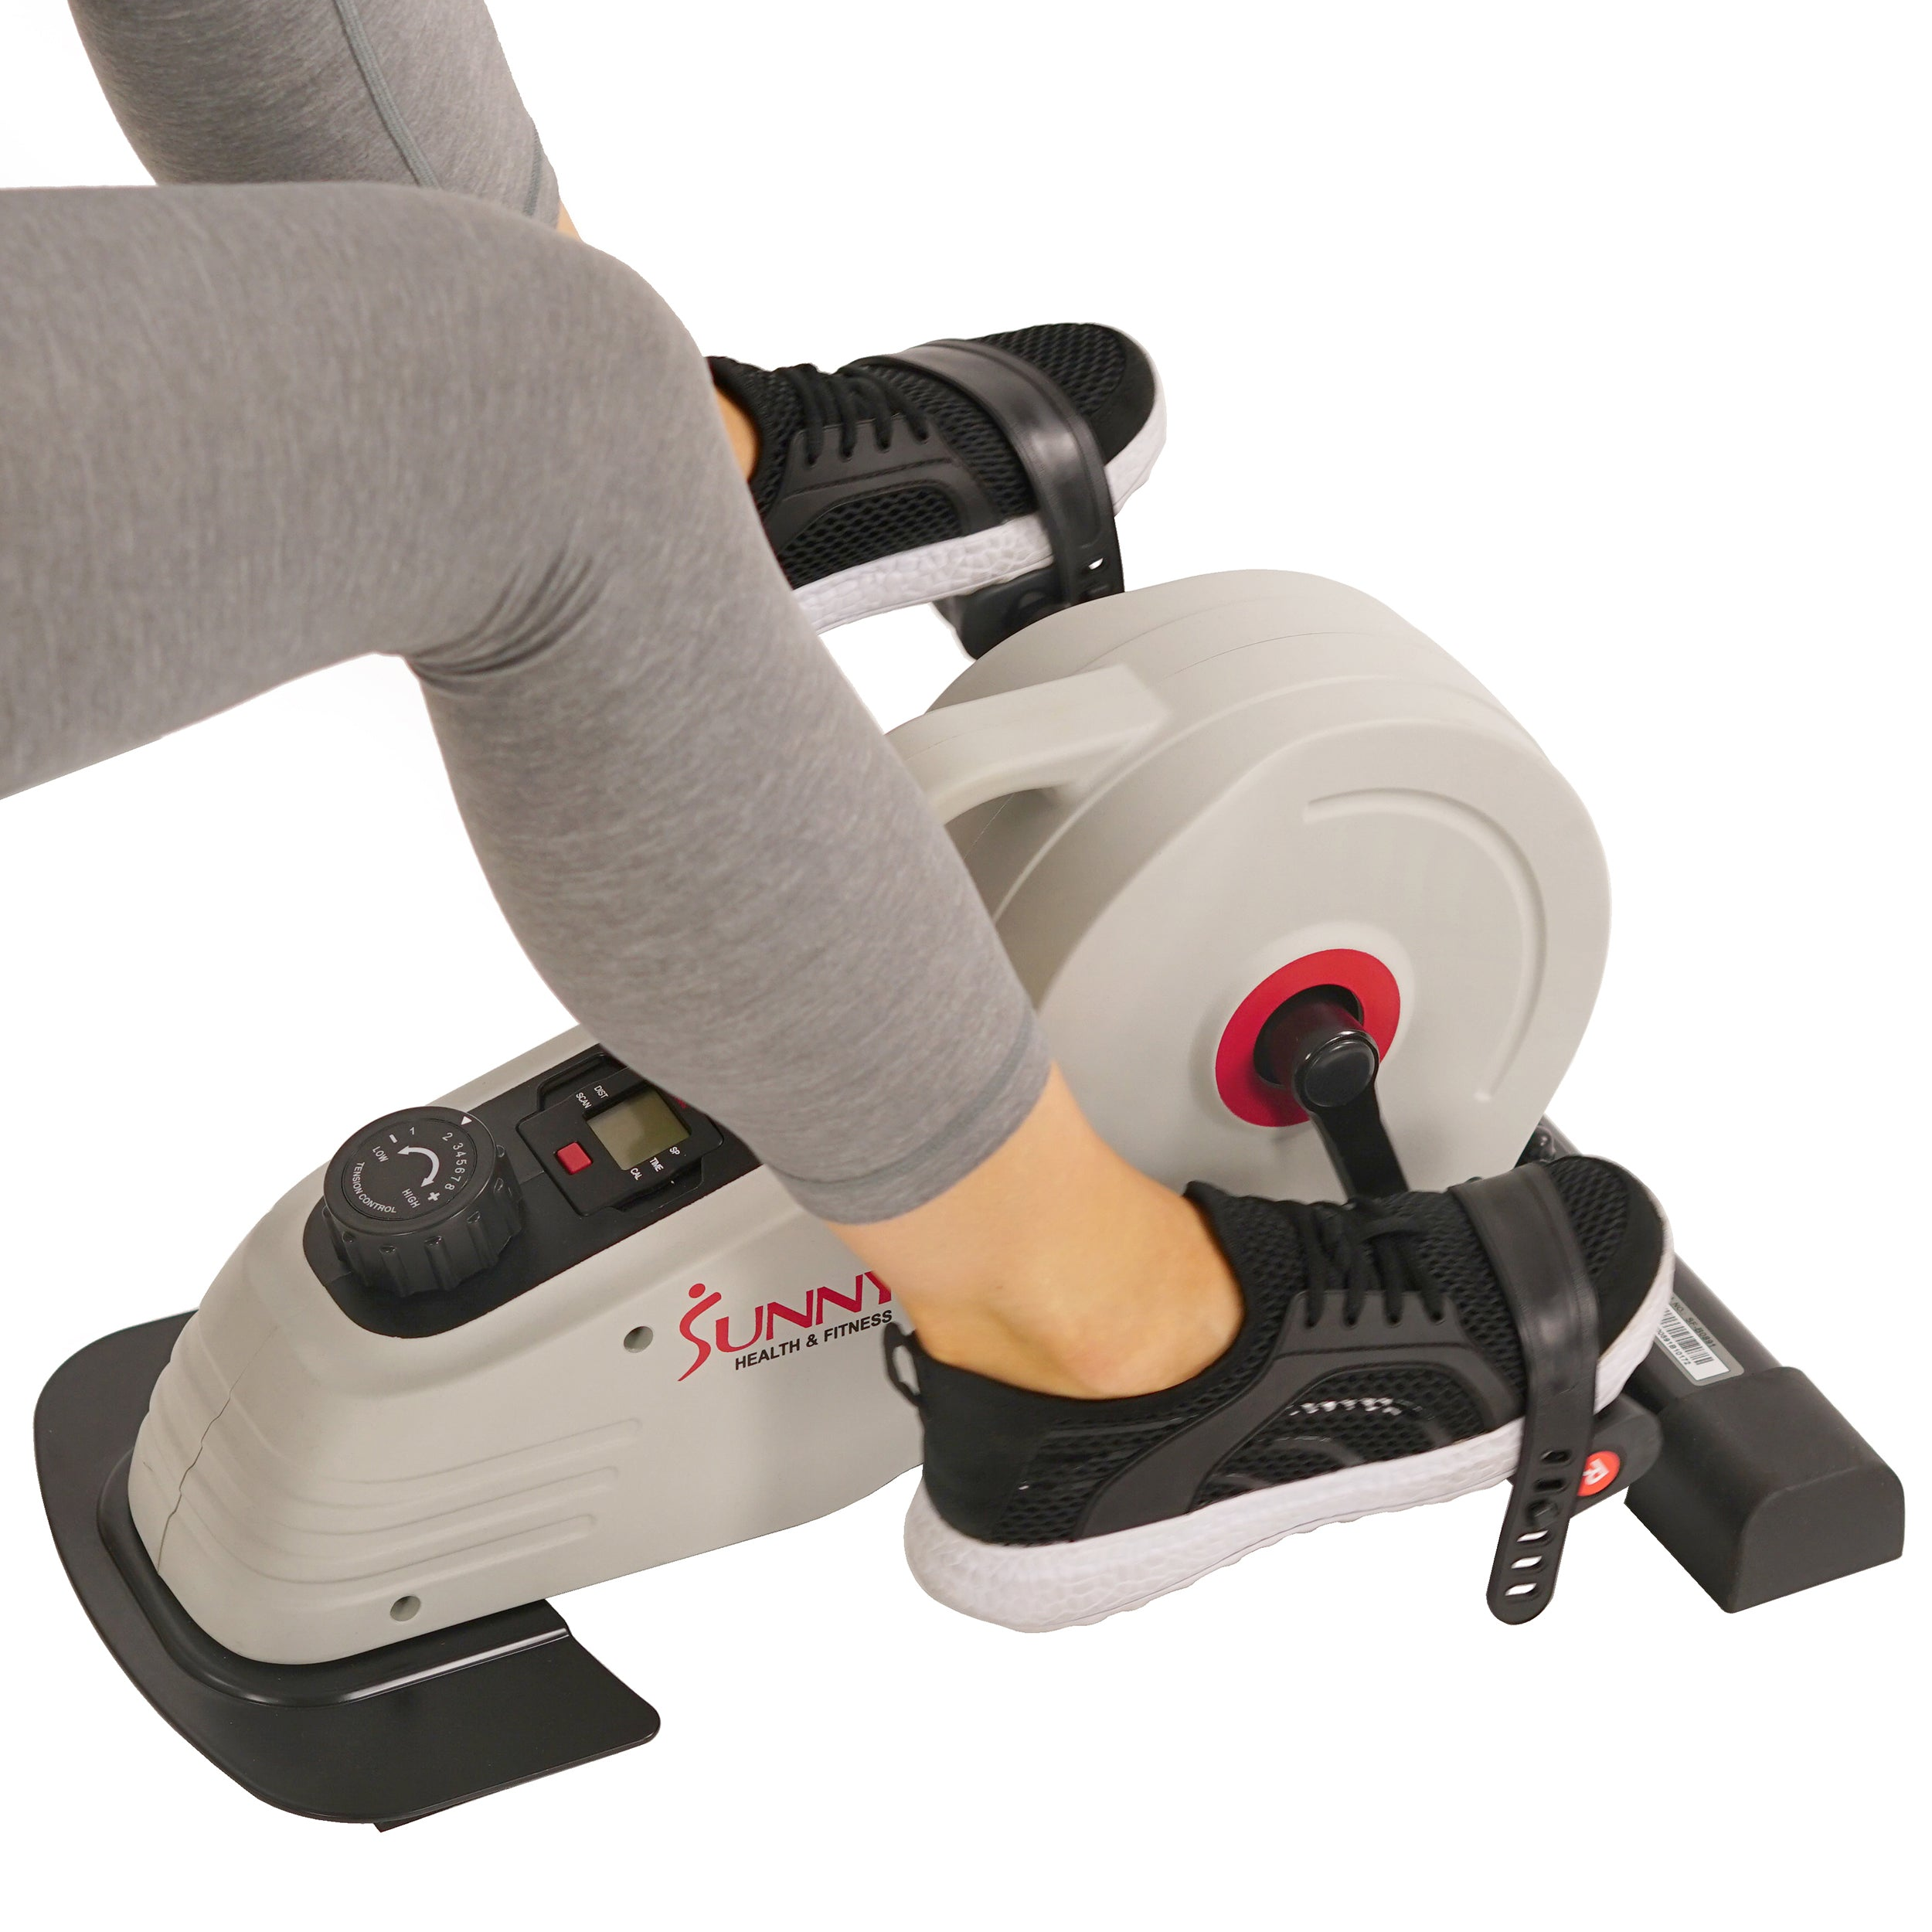 sunny-health-fitness-bikes-under-desk-magnetic-cycle-bike-SF-B0891-adjustable-foot-straps